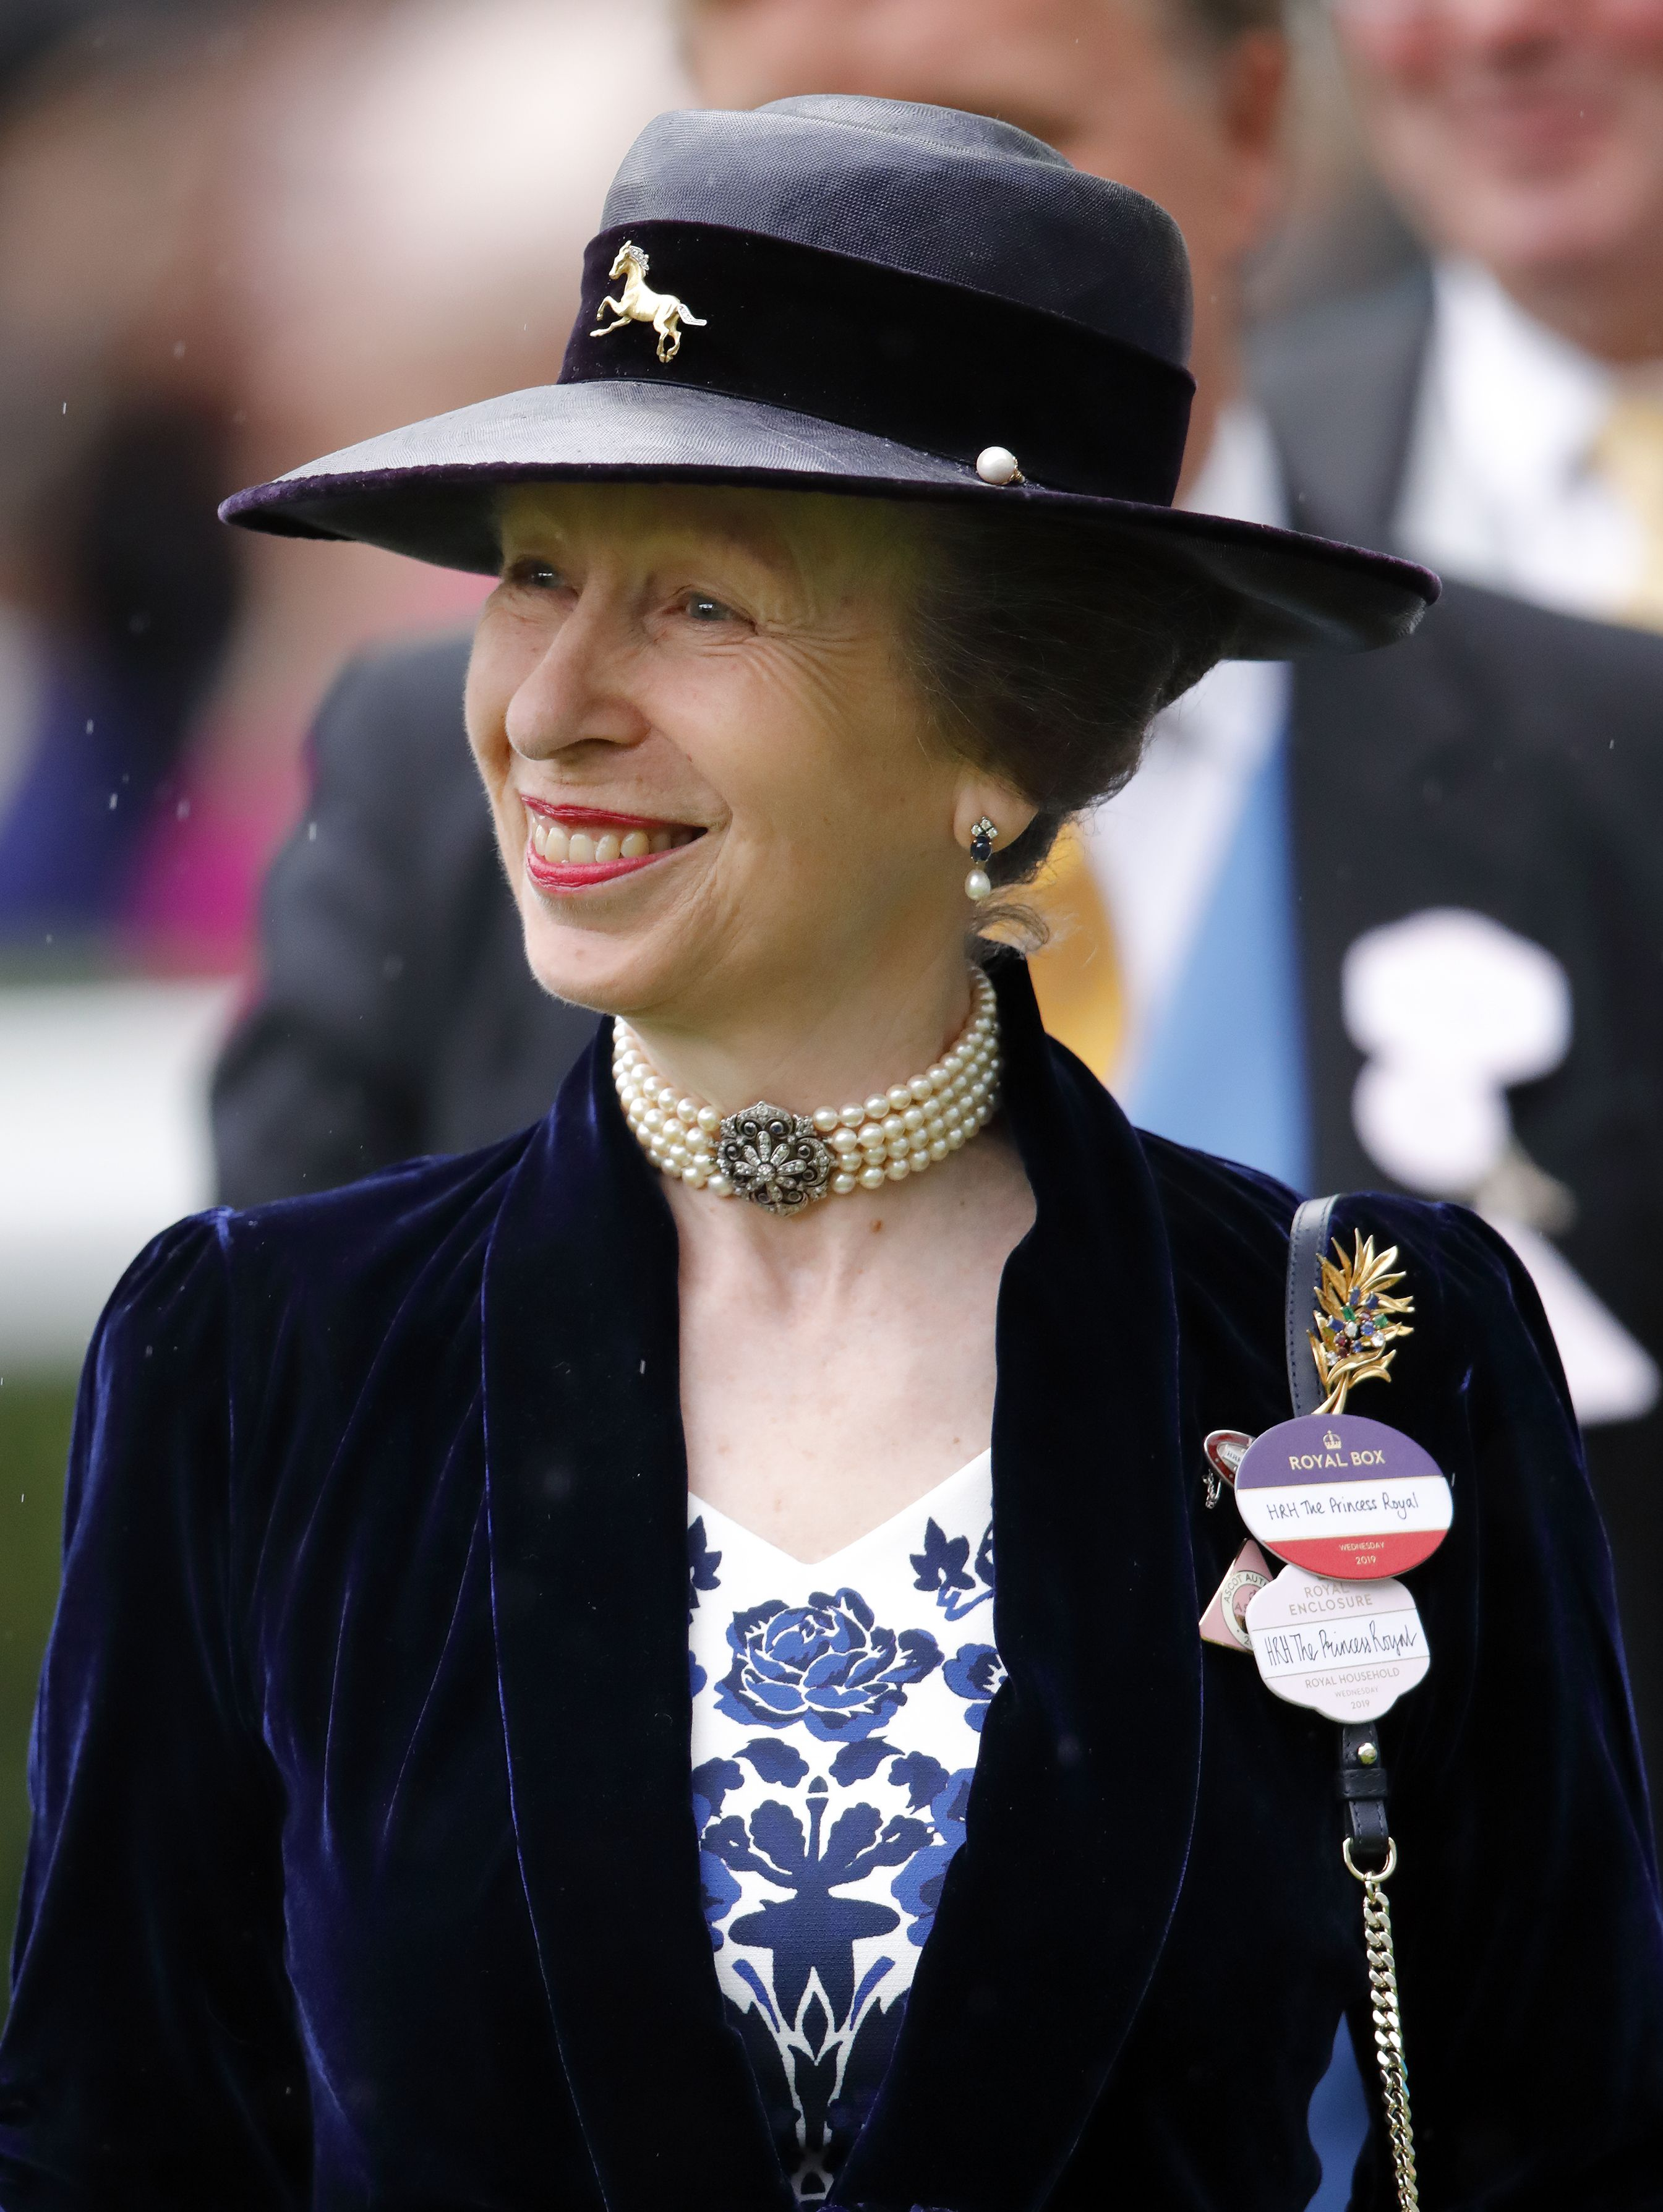 The Royal Family Celebrates Princess Anne's Birthday With Well-Wishes on Instagram